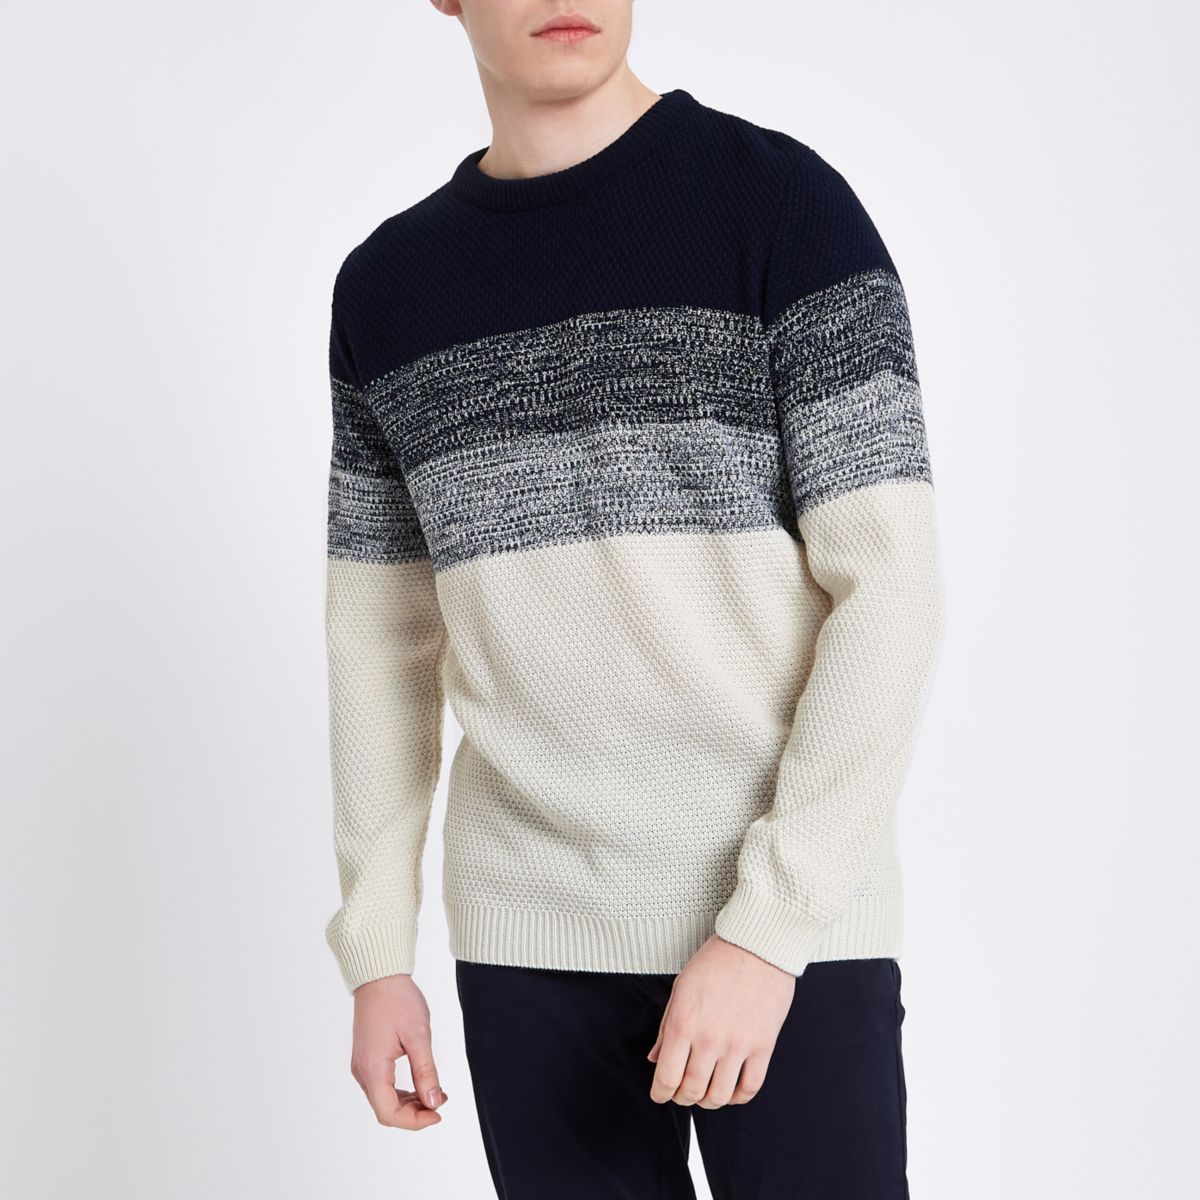 Navy and cream ombre knit jumper